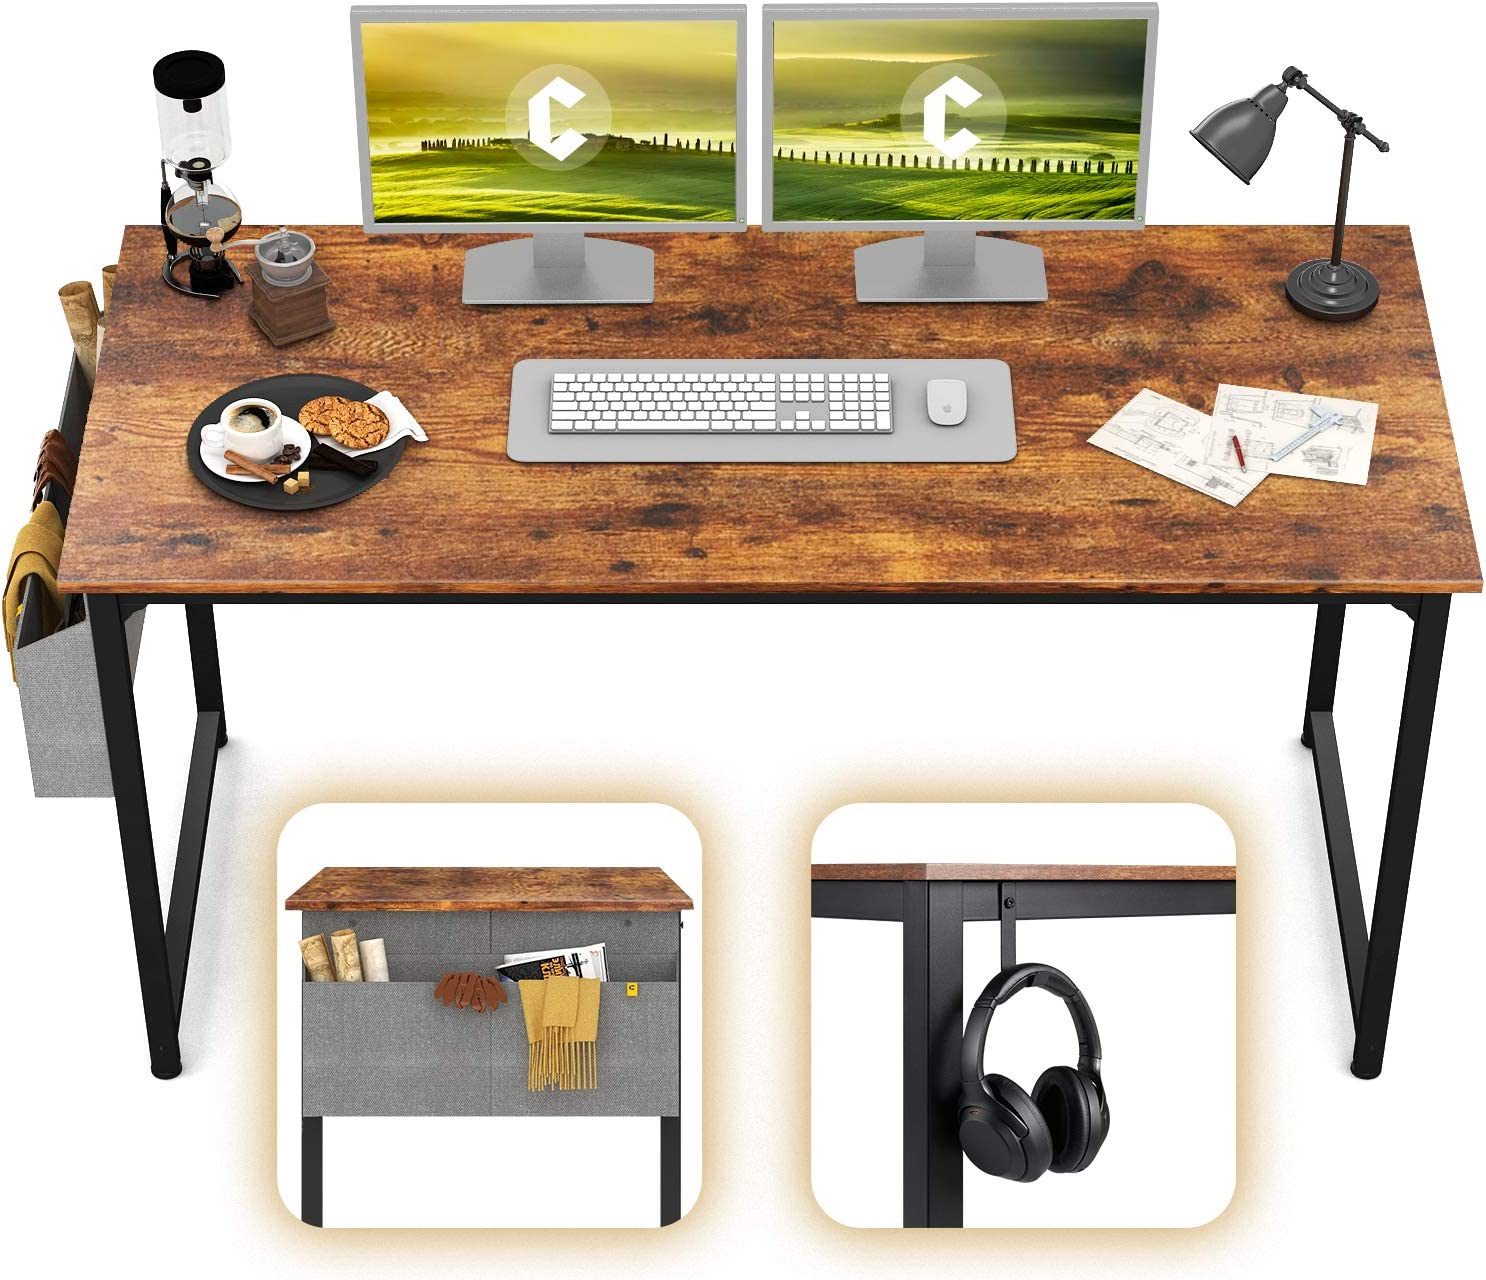 "CubiCubi Study Computer Desk 55"" Home Office Writing Desk, Industrial Simple Style PC Table, Black Metal Frame, Rustic"